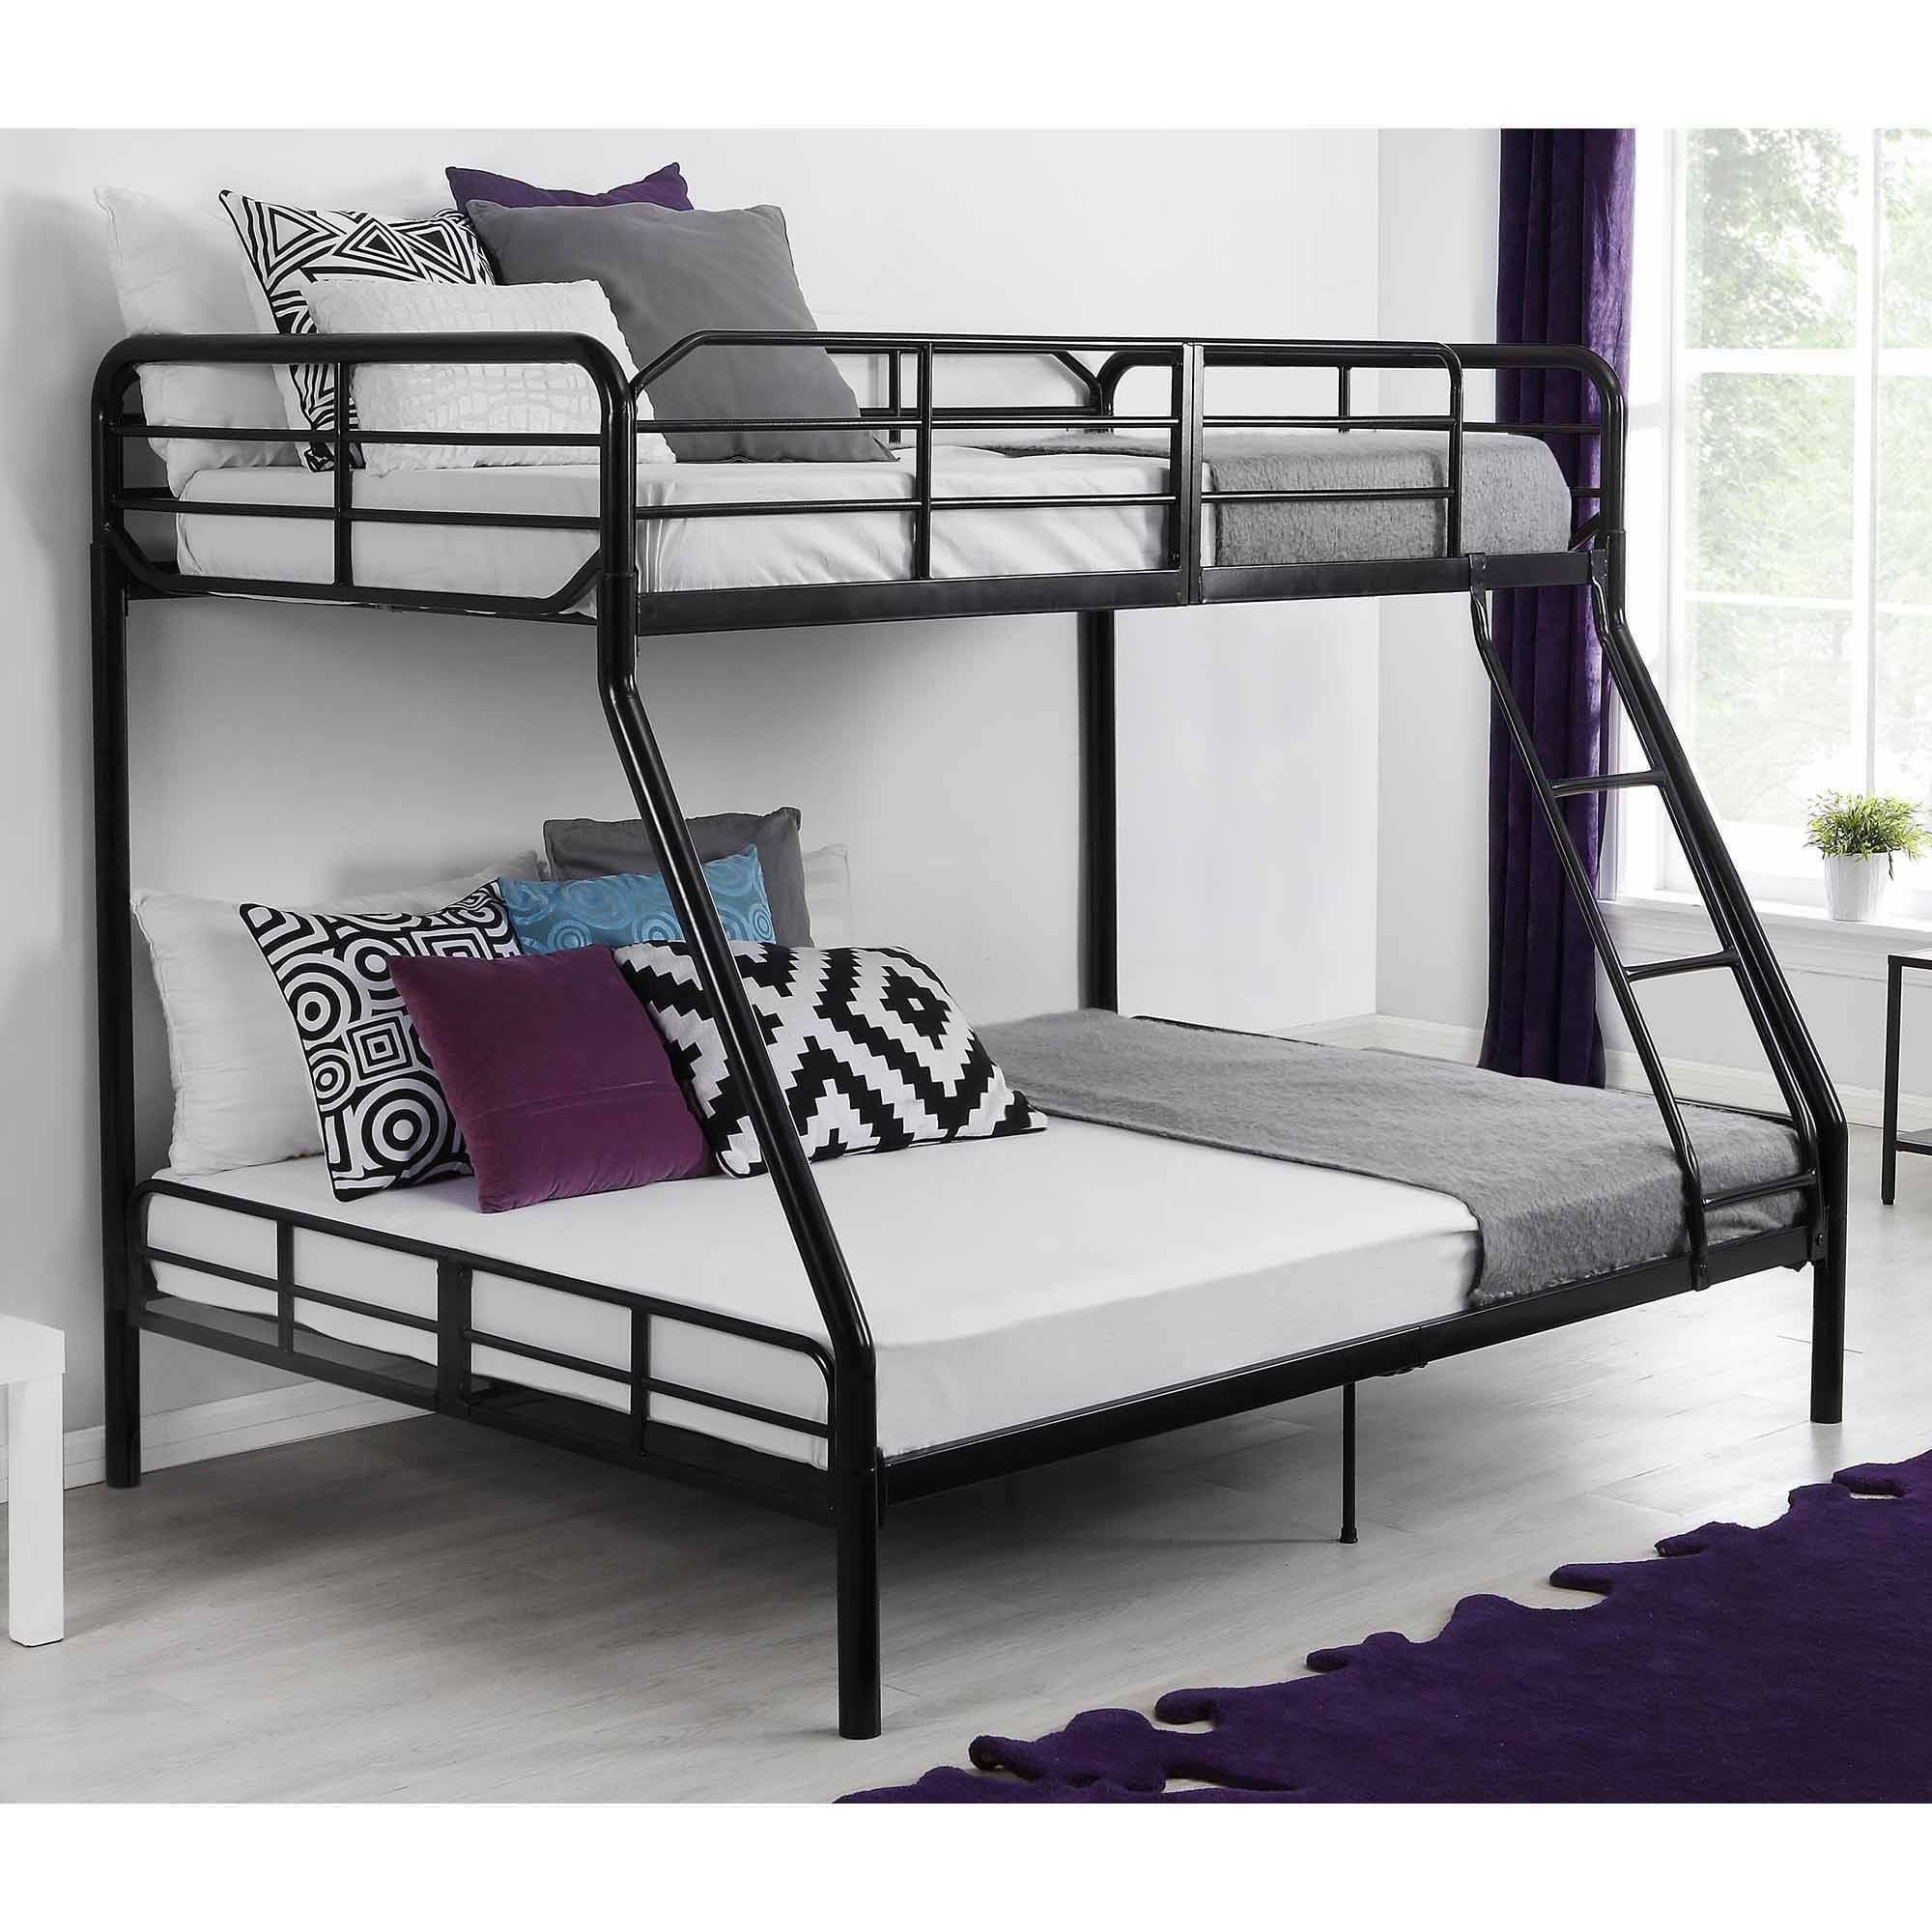 Bedding sets for teenage girls walmart - Bedding Sets For Teenage Girls Walmart 37